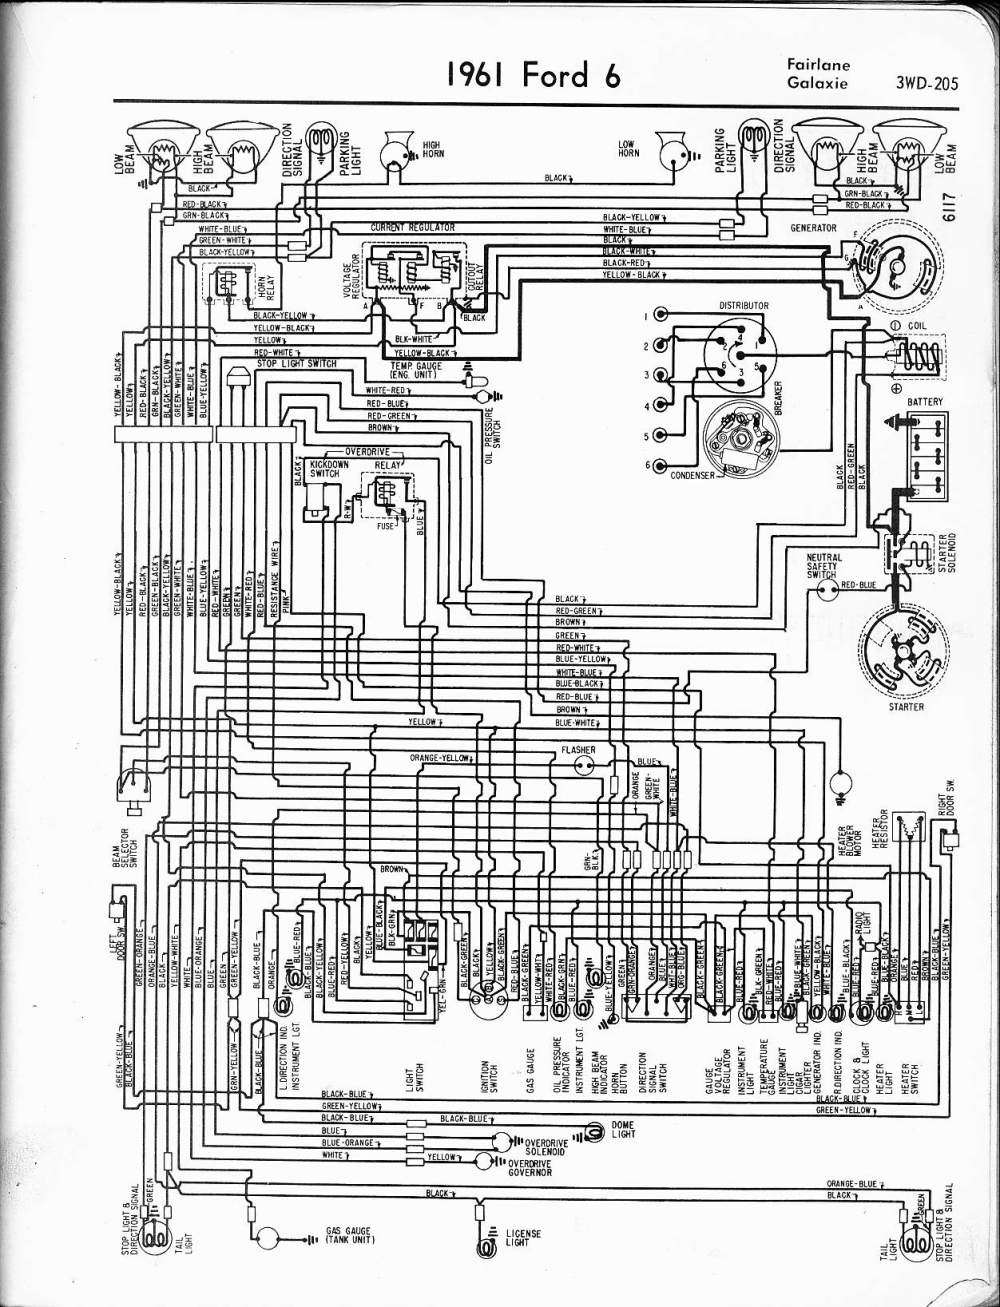 medium resolution of 57 65 ford wiring diagrams 1949 ford generator wiring 1961 6 cyl fairlane galaxie